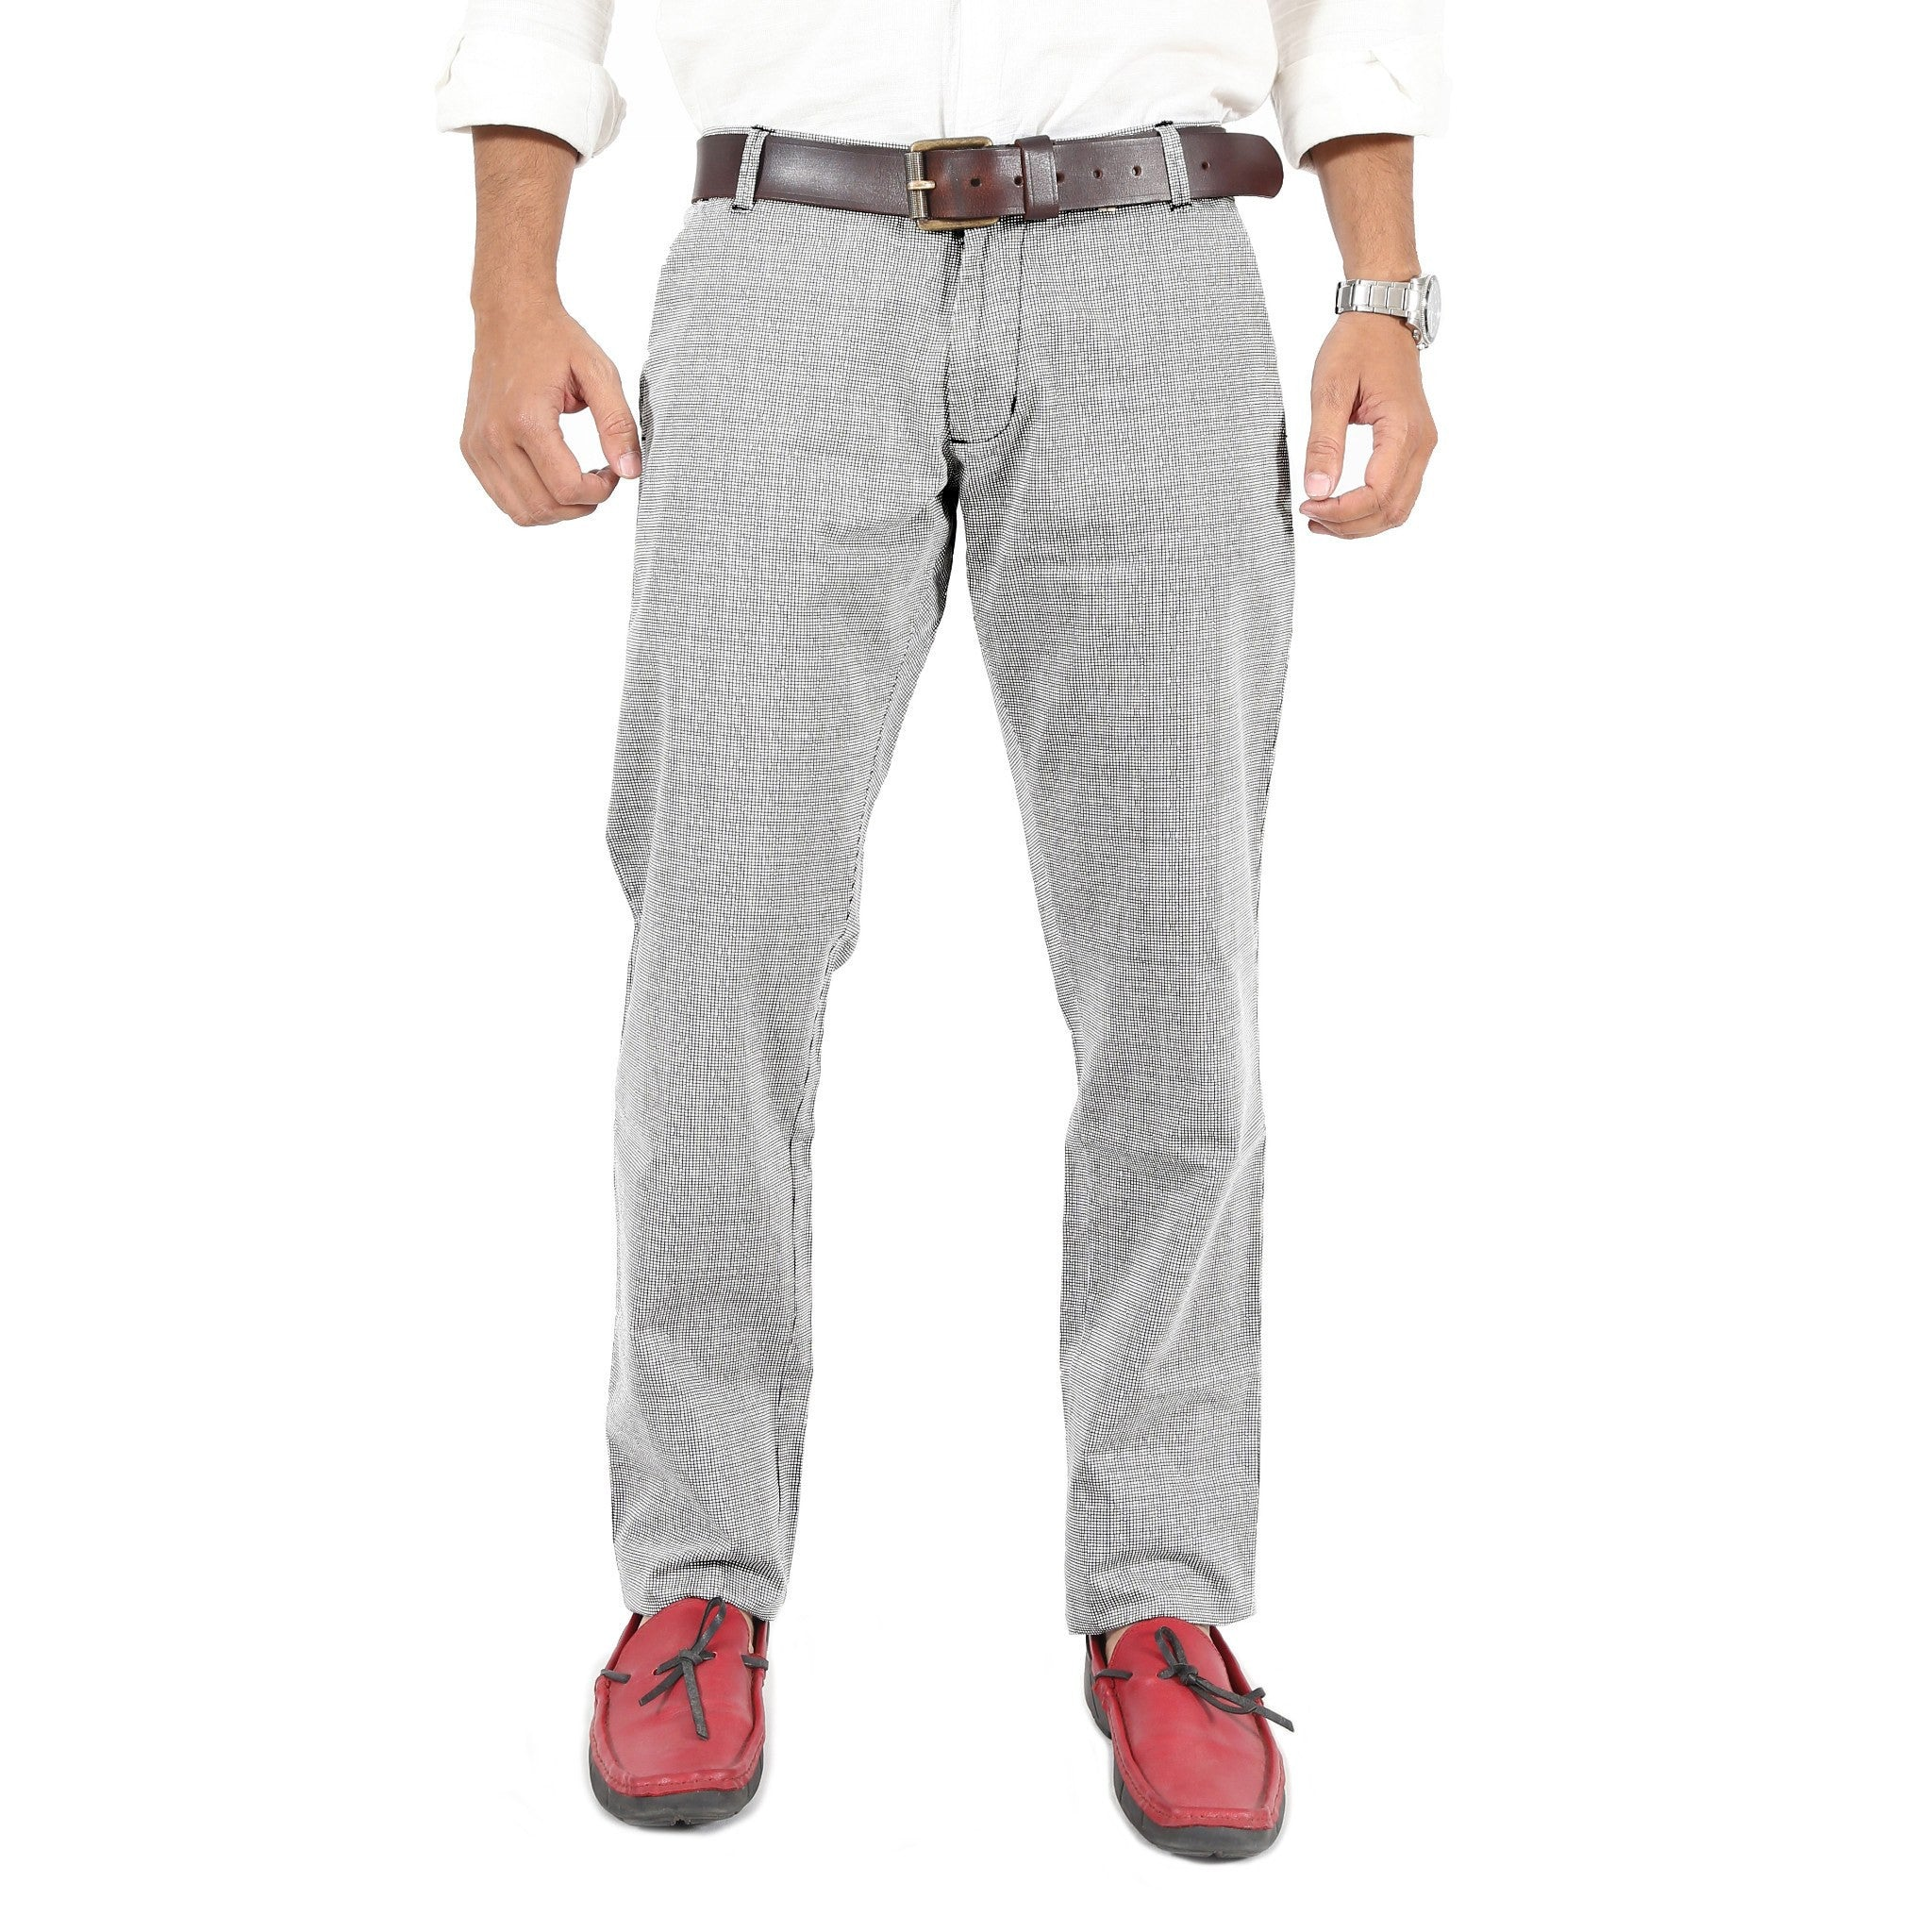 Wavy Grid Checks Trouser By Uber Urban Front